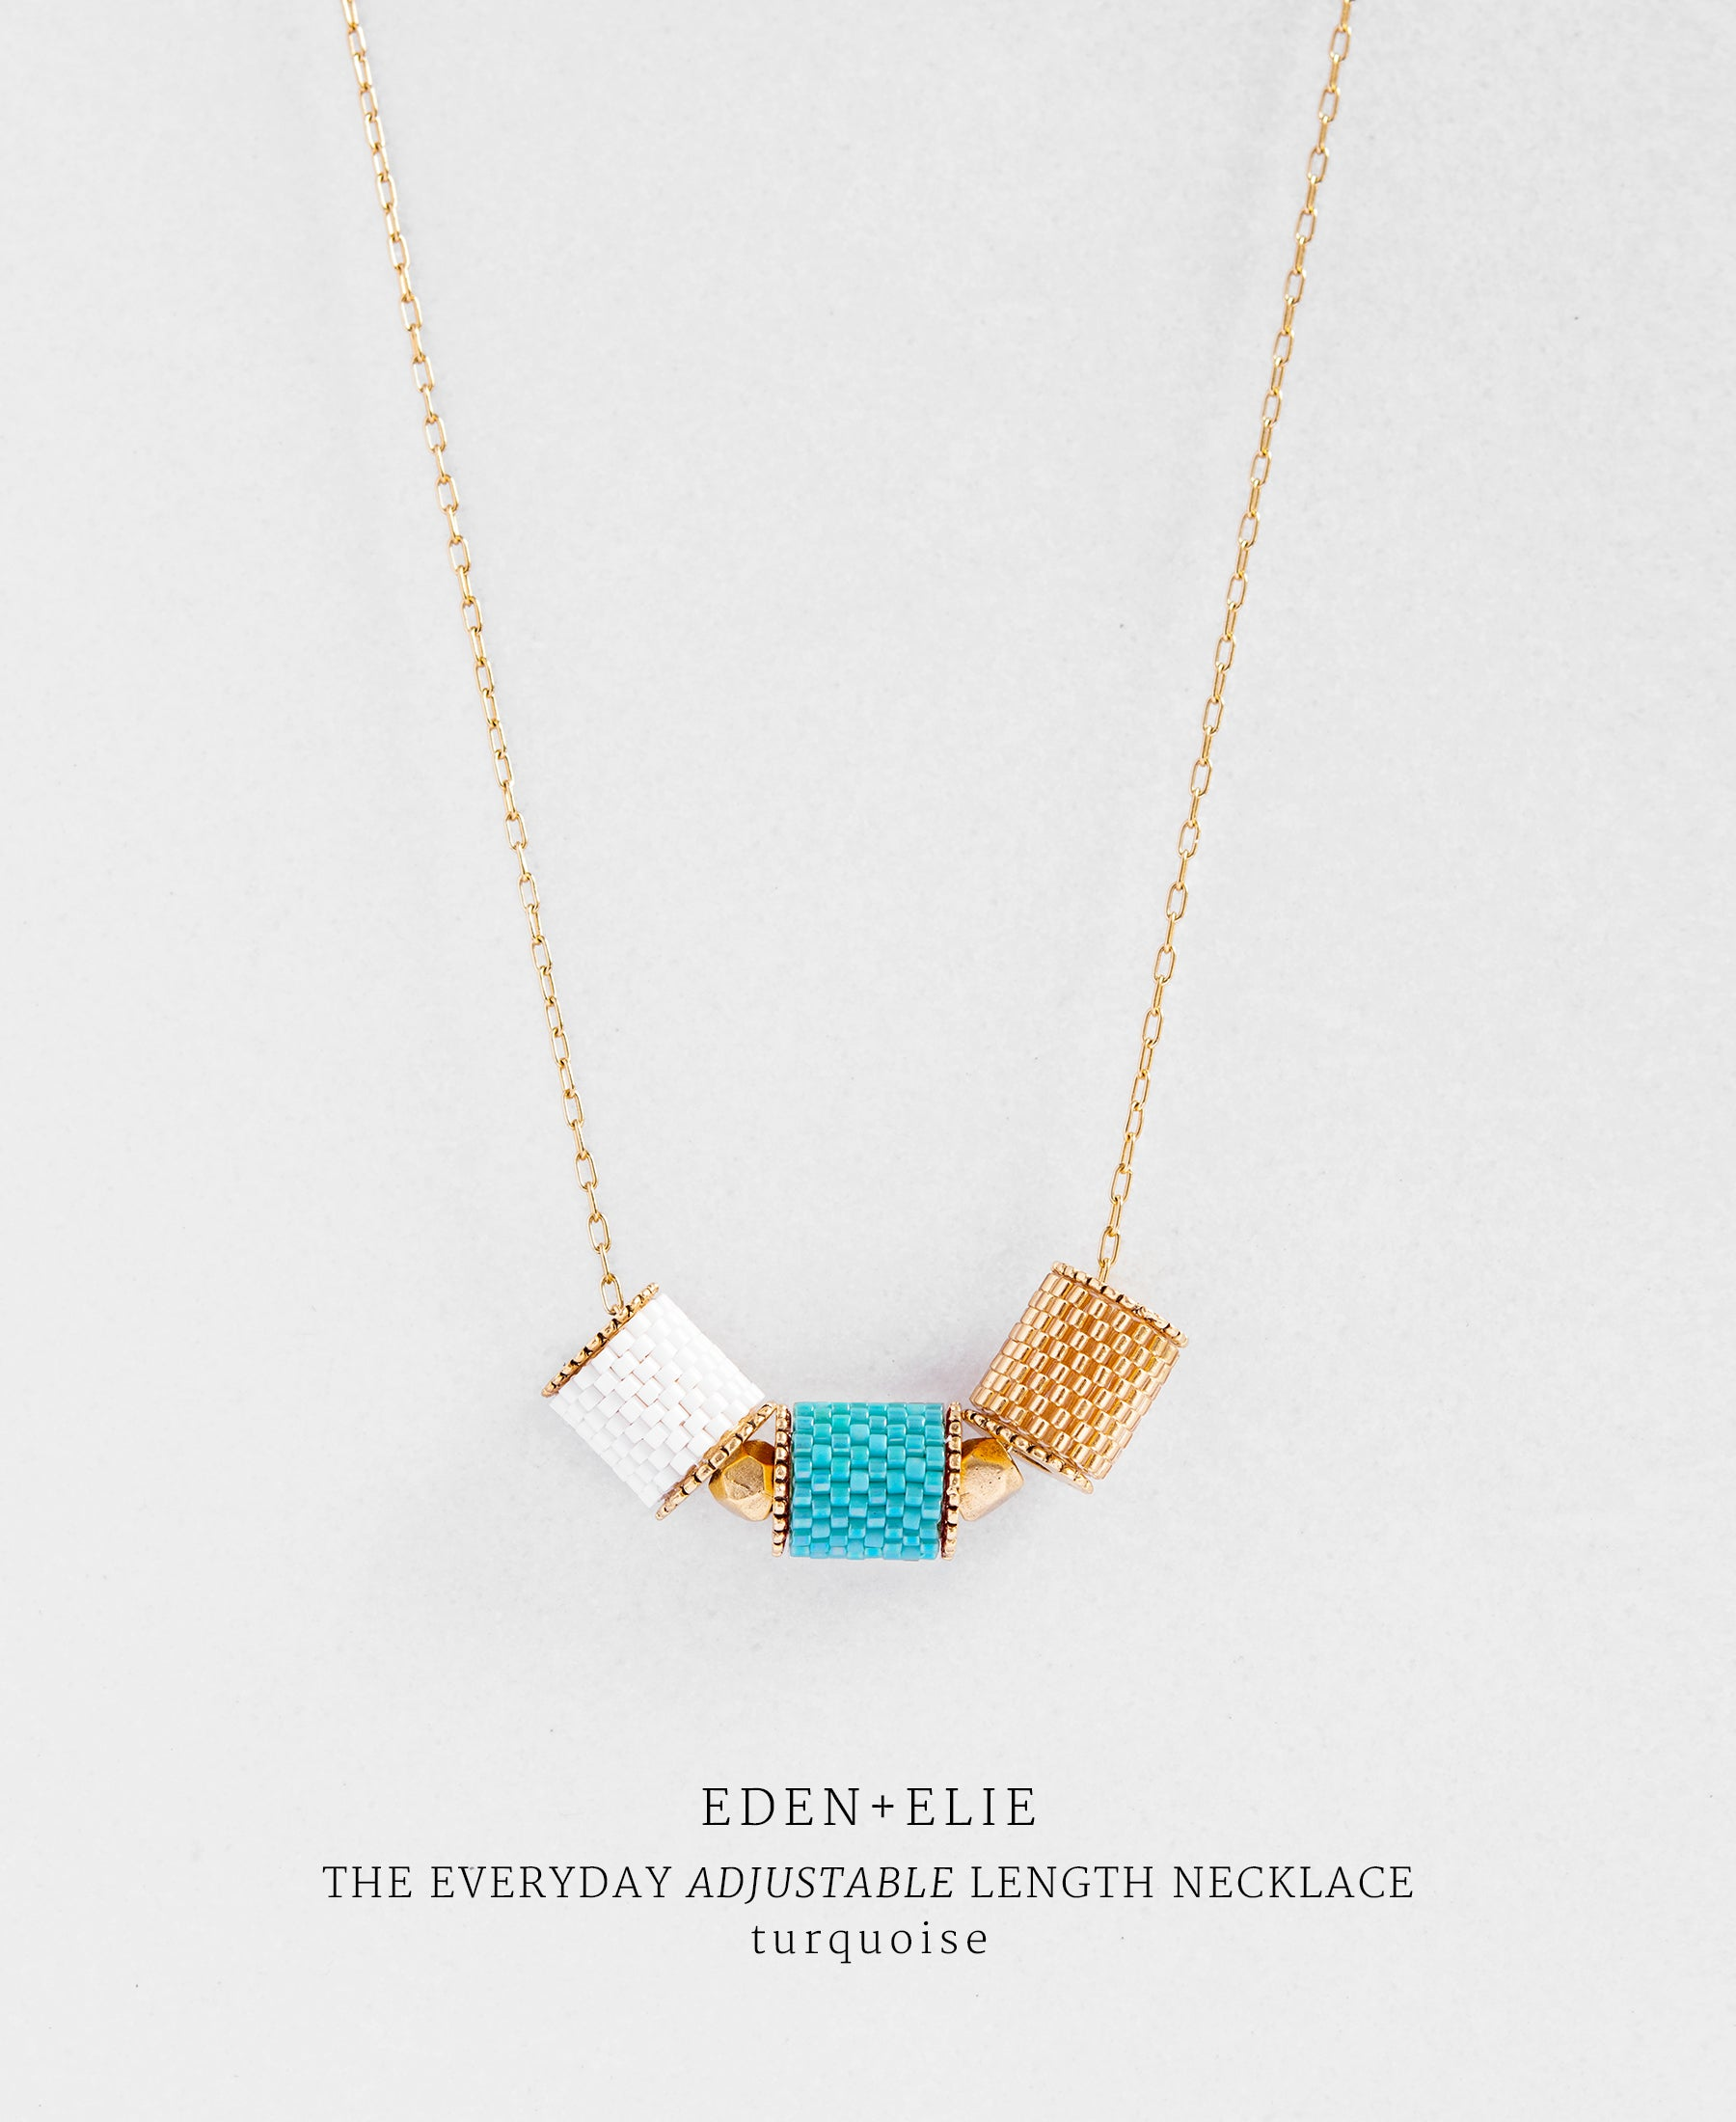 EDEN + ELIE Everyday adjustable length necklace - turquoise